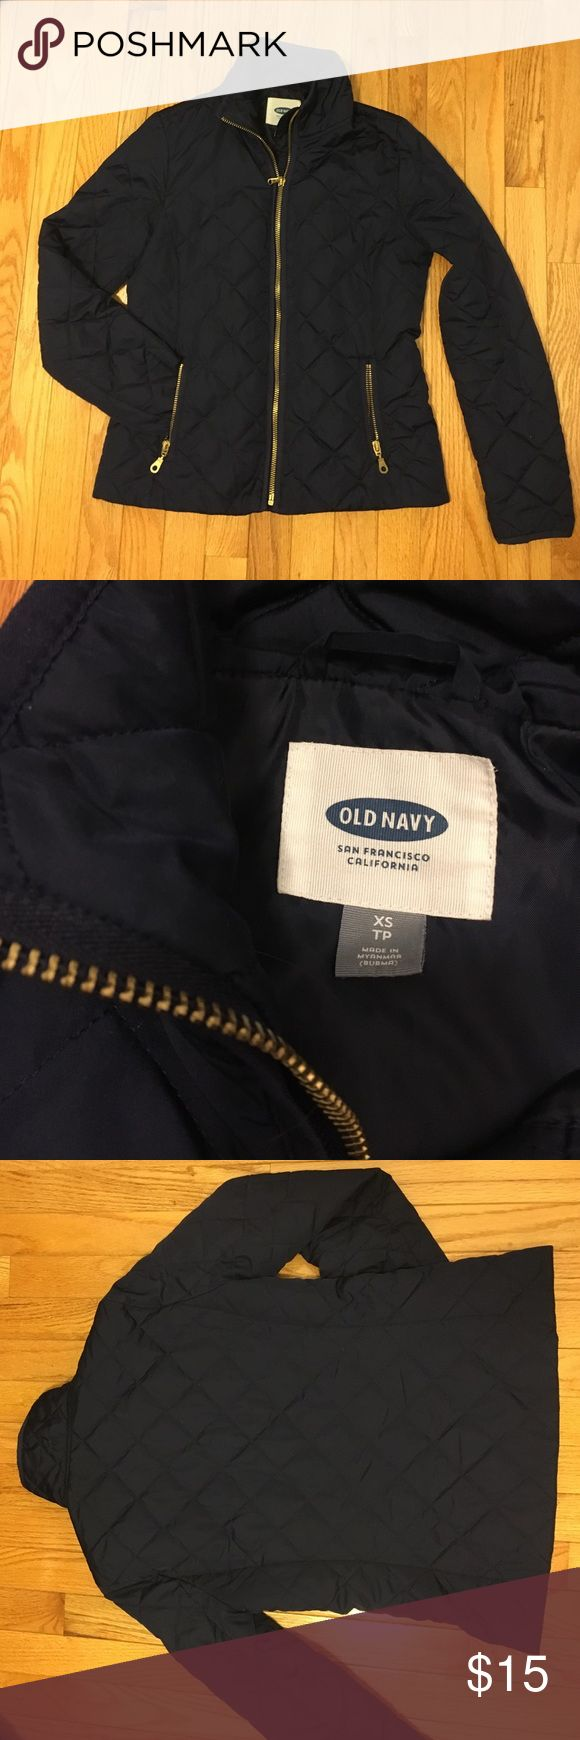 Old Navy Quilted Navy Jacket Classic navy quilted jacket in great condition. Only flaw is a small stain on the back of the collar (pictured). Gold zipper and 2 zipper pockets. Zippers show slight wear Old Navy Jackets & Coats